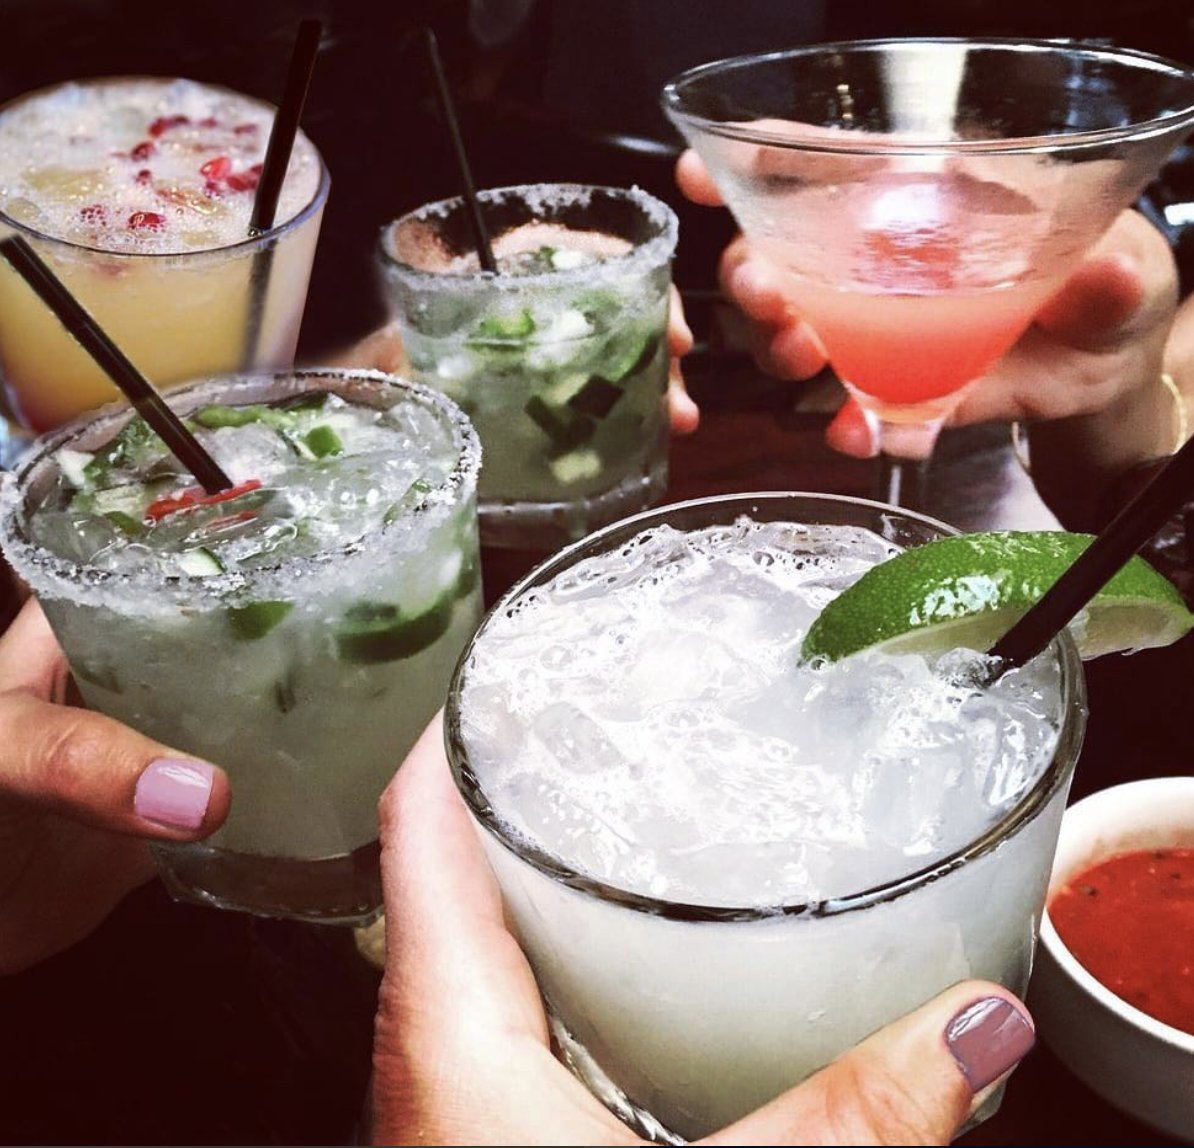 test Twitter Media - Happy #NationalMargaritaDay friends!  We'll be celebrating at Javier's in our lil home of Laguna Beach. 🌴🍹 https://t.co/5aNDi5Erto